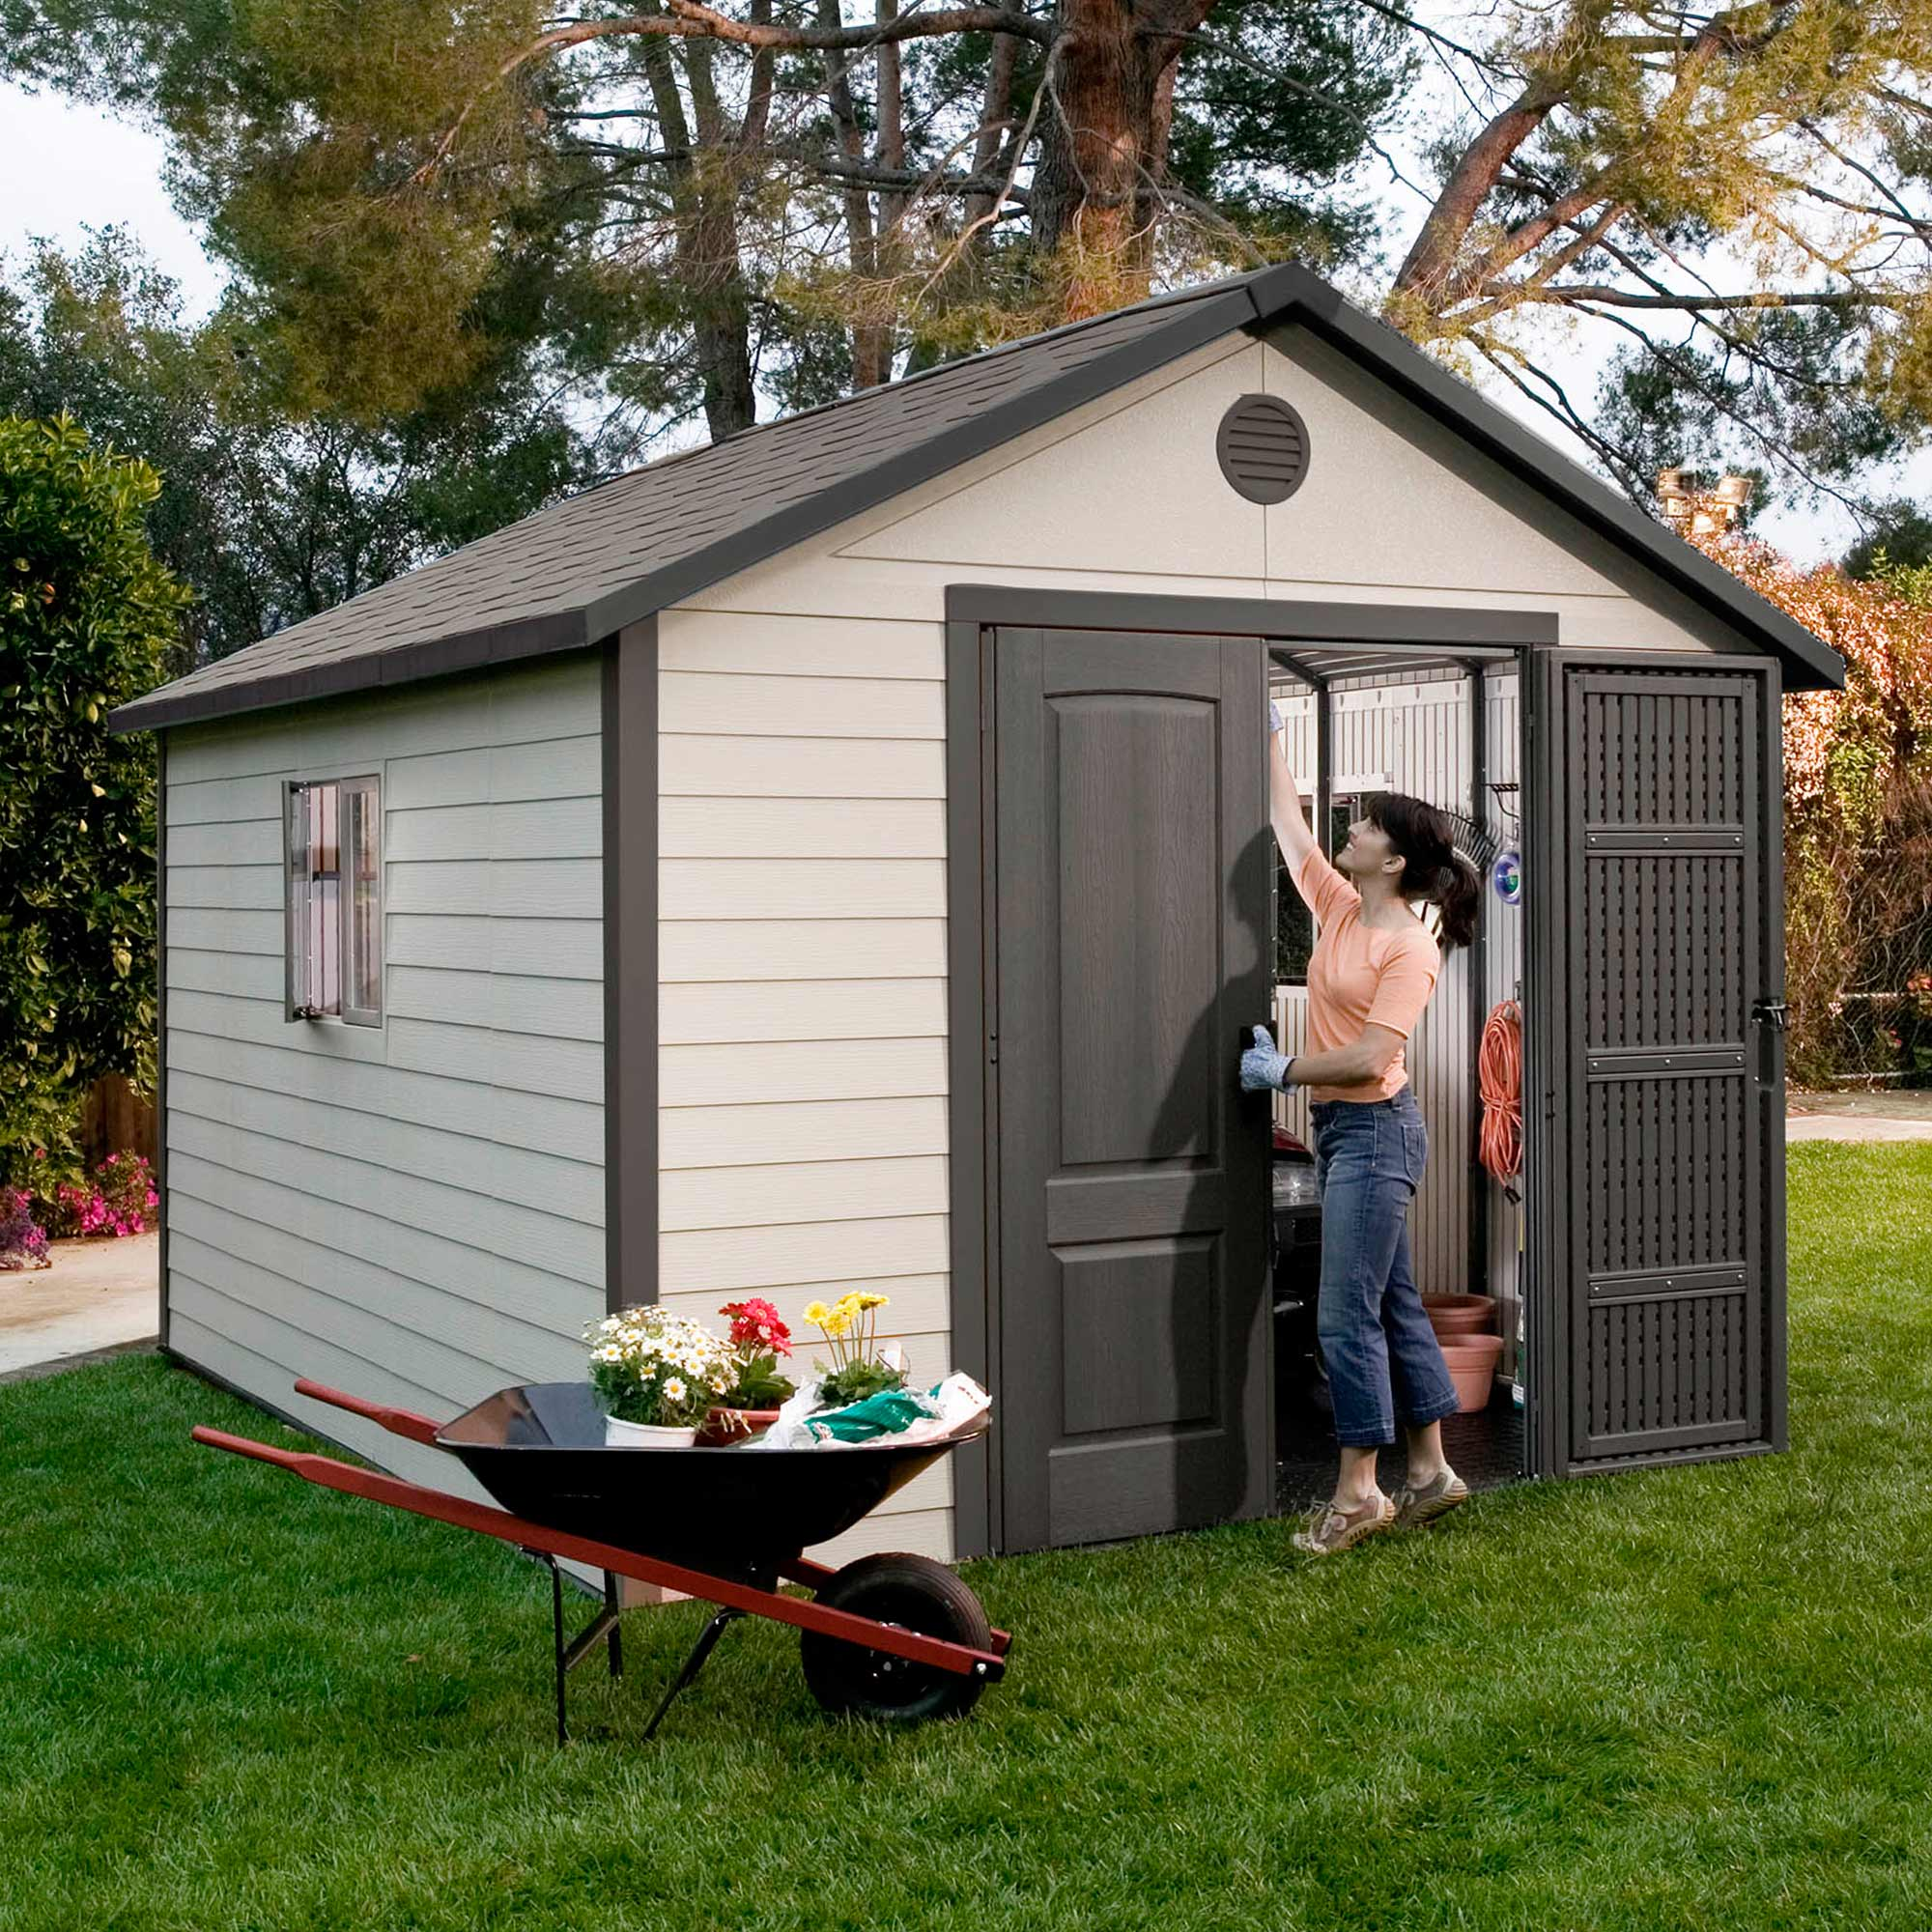 Image of 11' x 16' Lifetime Heavy Duty Plastic Shed (3.16m x 4.68m)